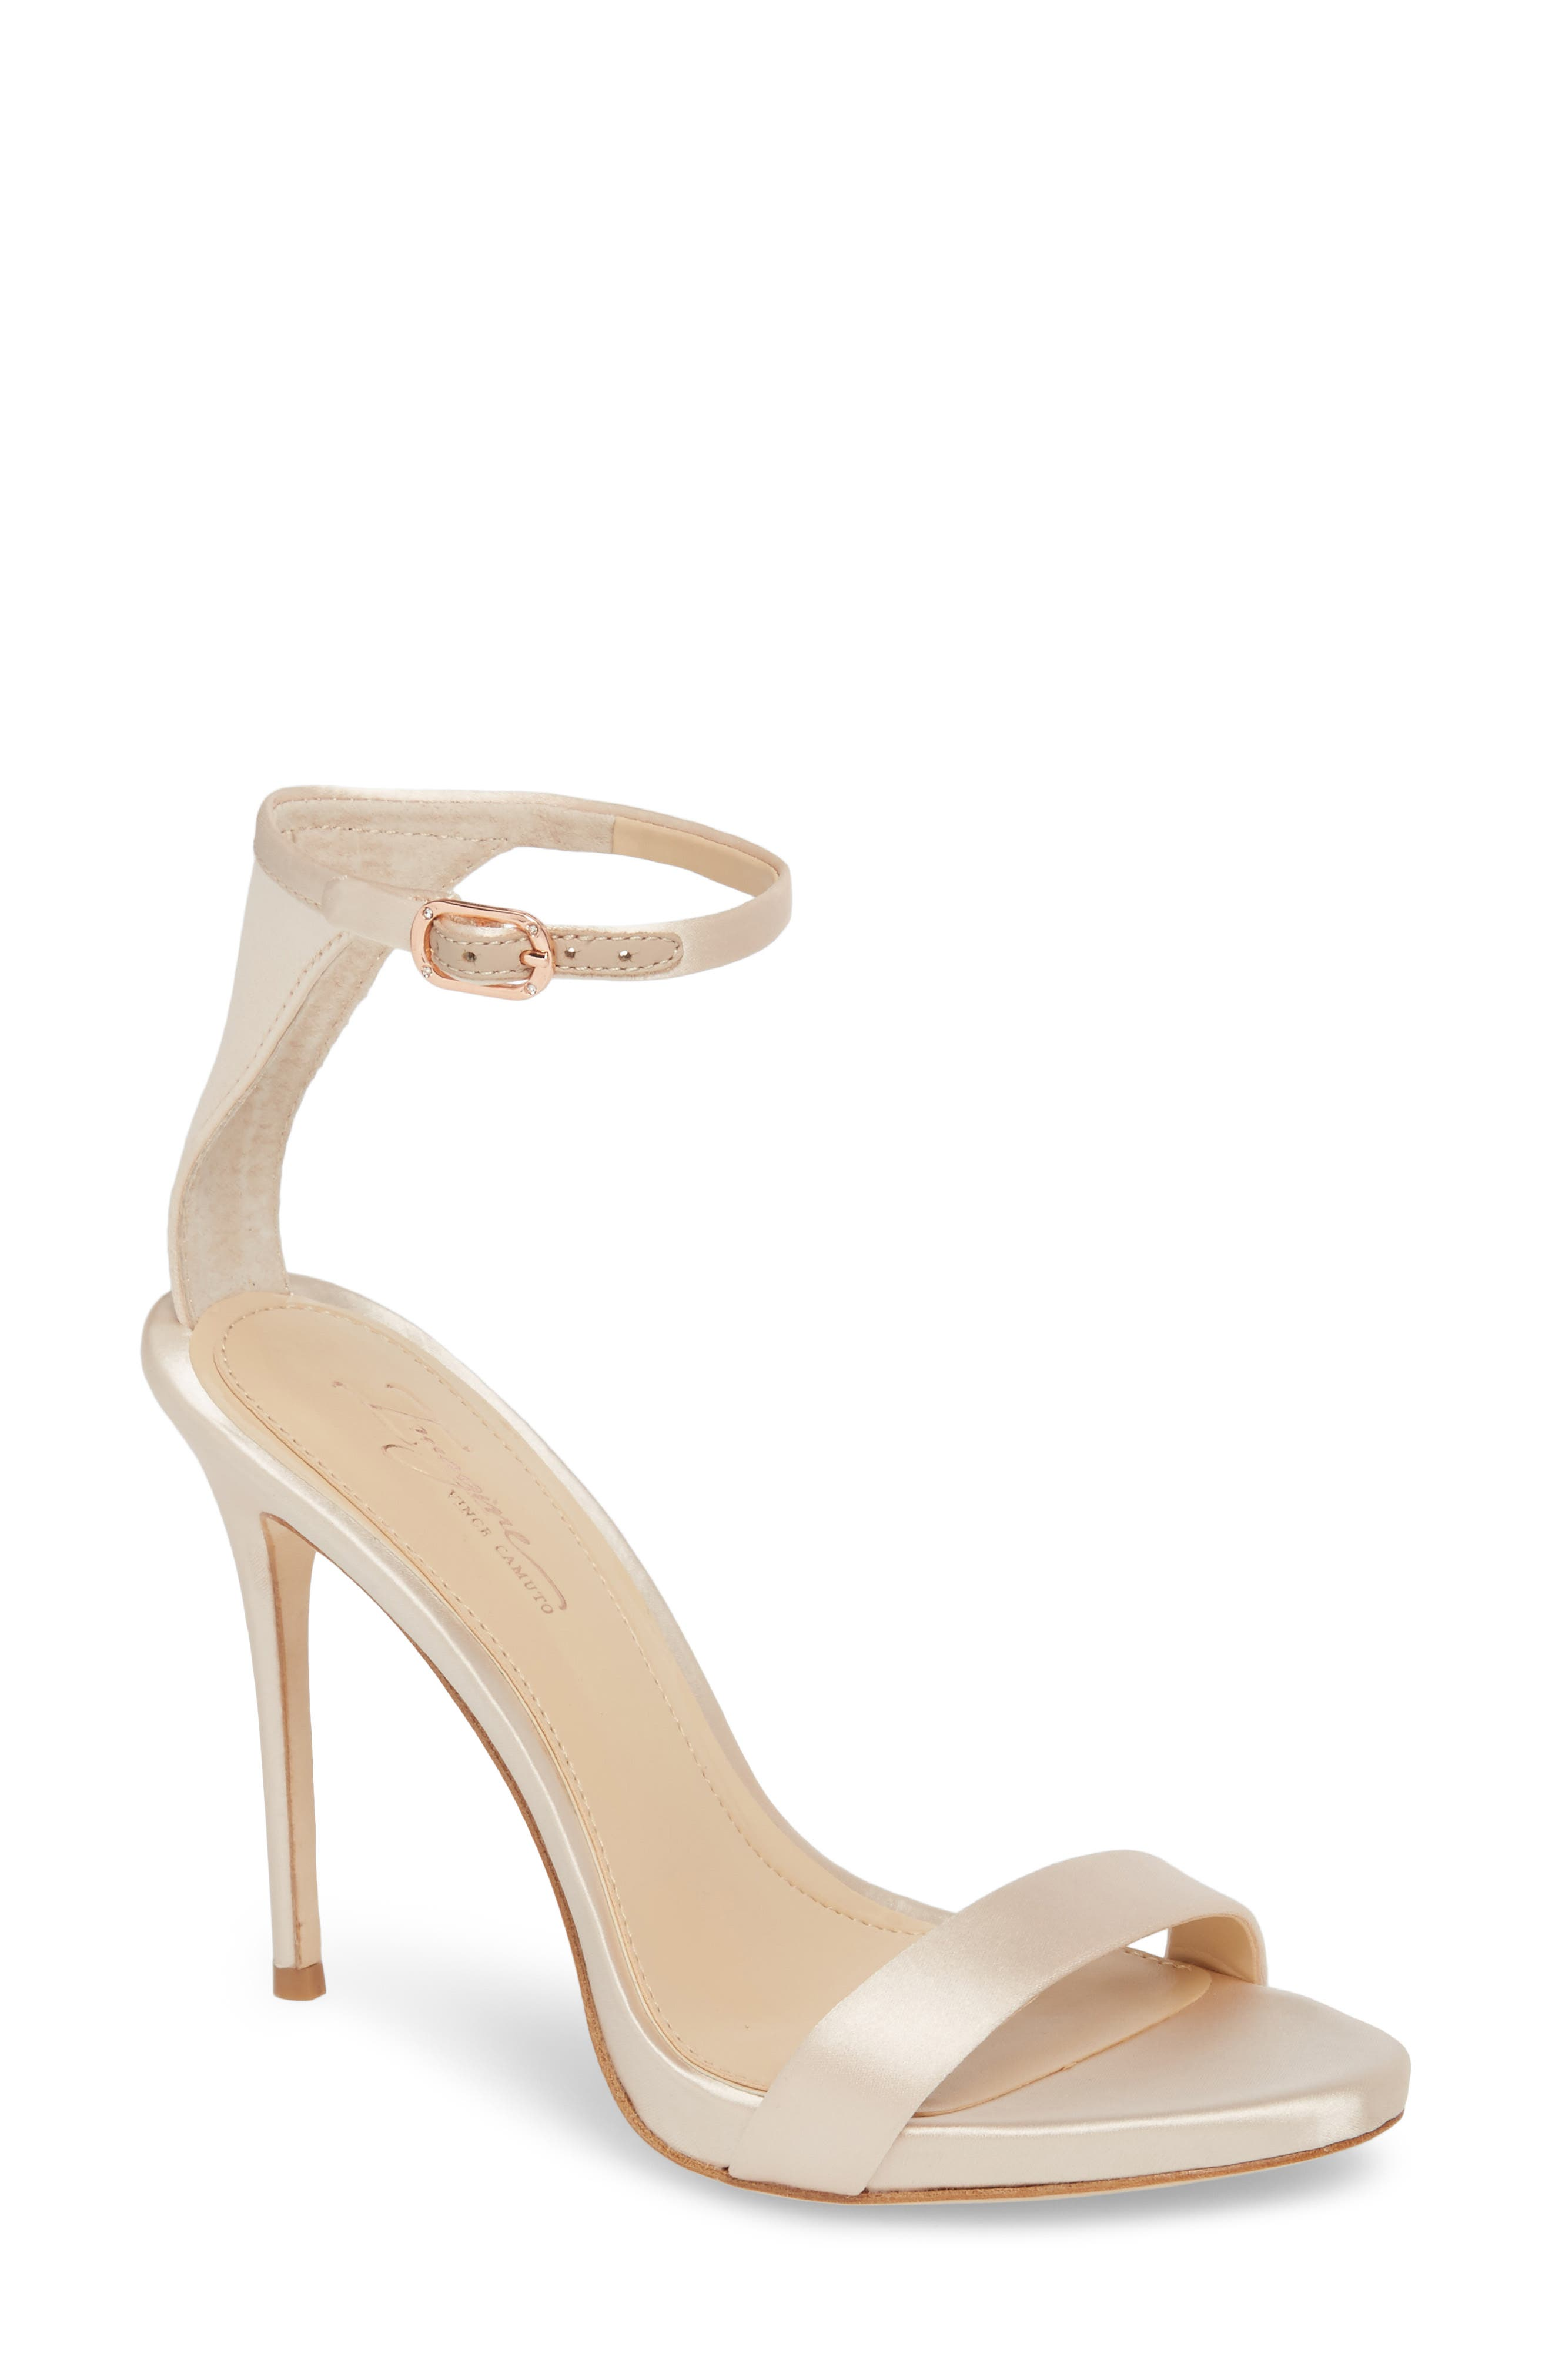 Imagine by Vince Camuto Dacia Sandal (Women)